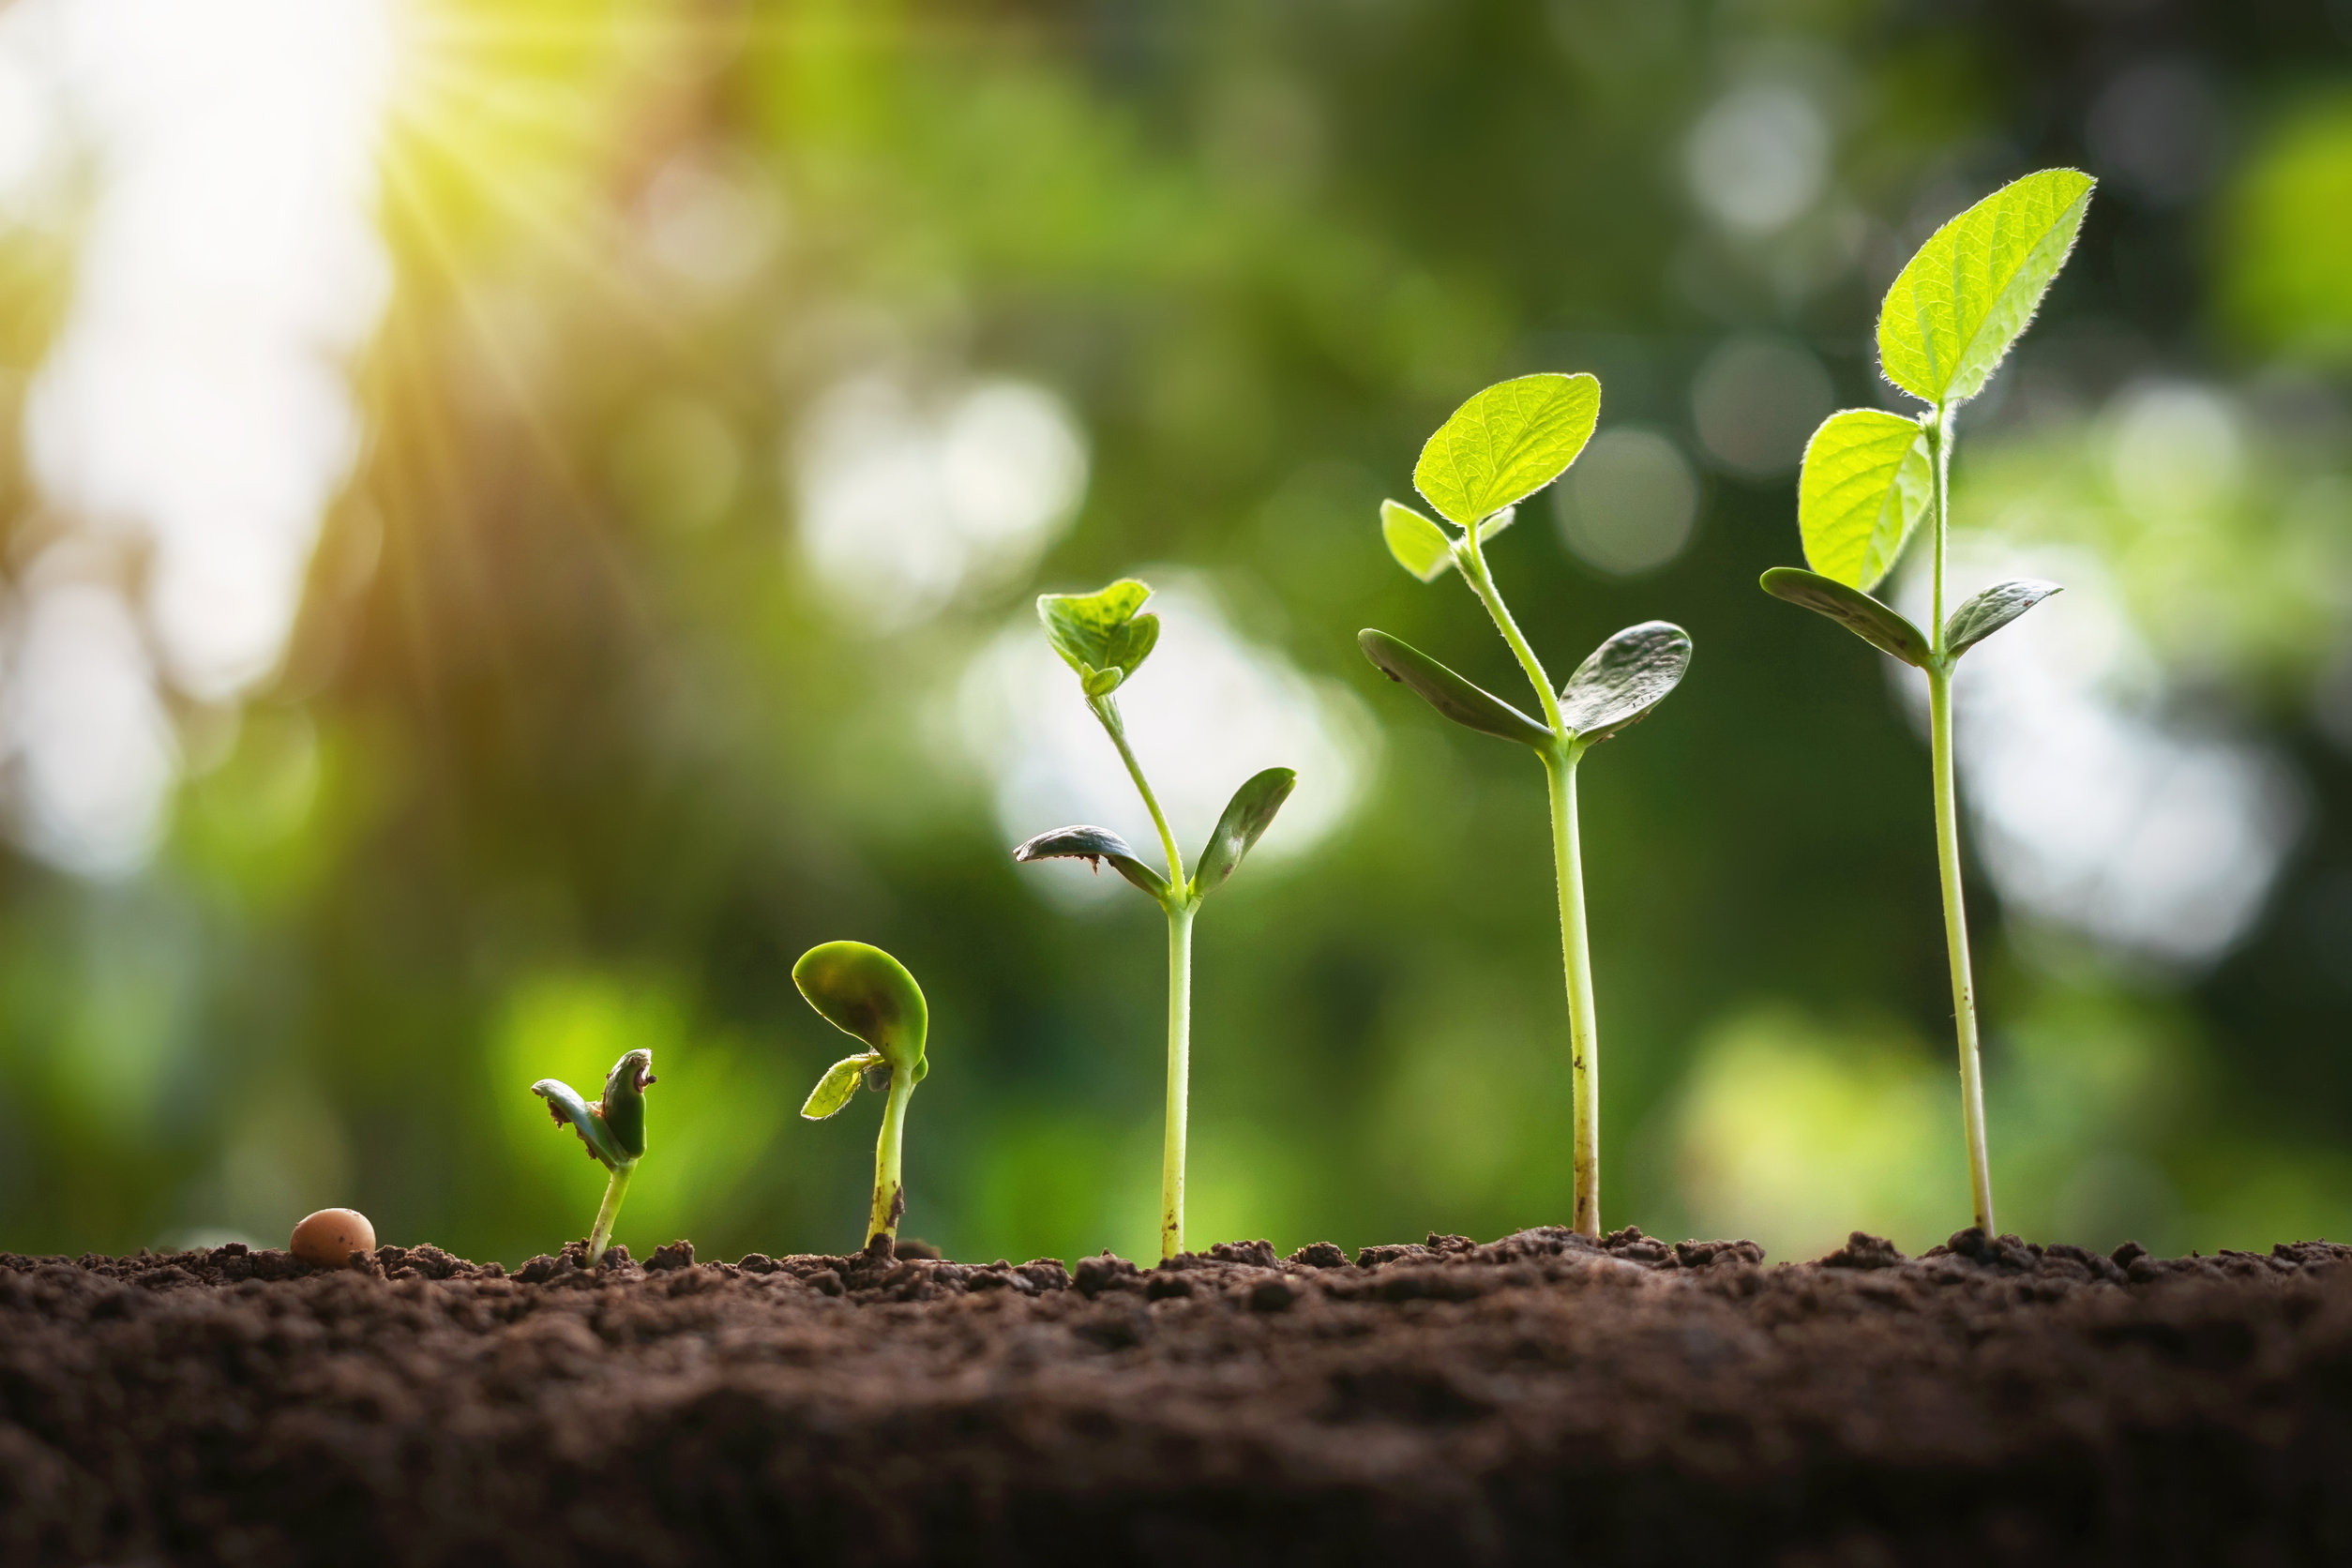 Developing sustainable growth strategies and solutions takes a measured, proactive approach. Get the most ROI on your efforts by following these steps.